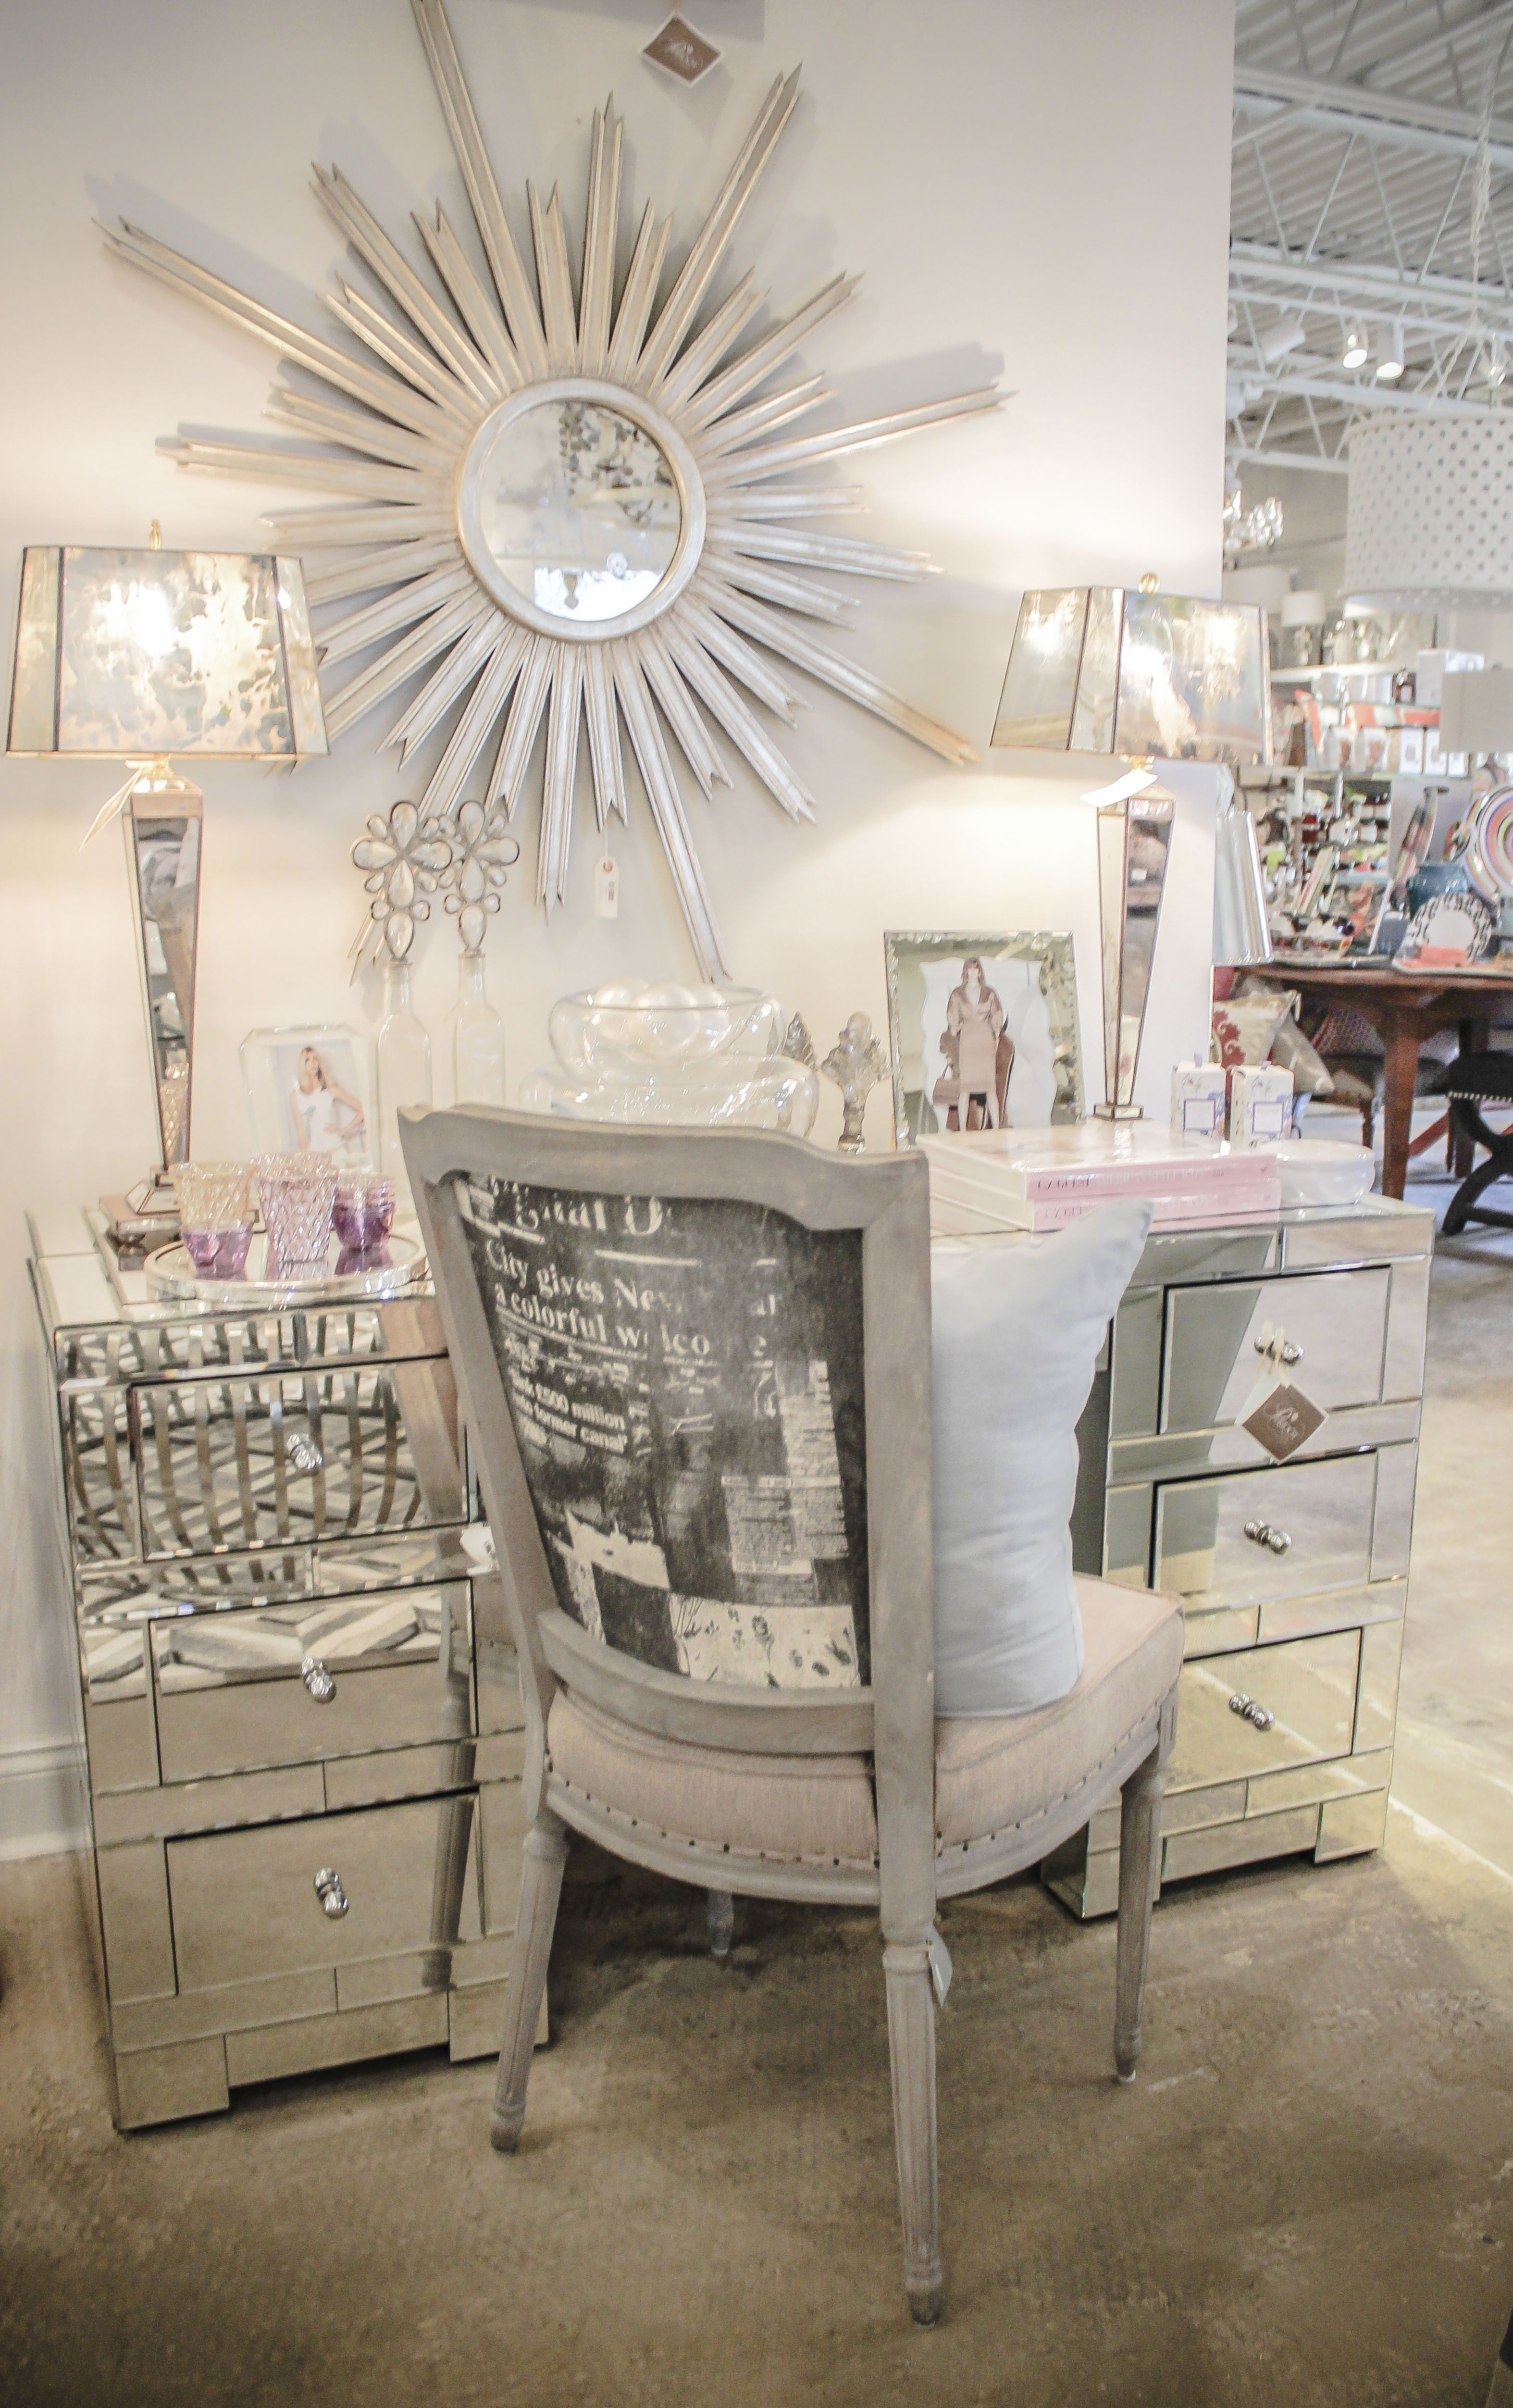 Mirrored Desk Starburst Mirror Shabby Chic Chair And Lamps